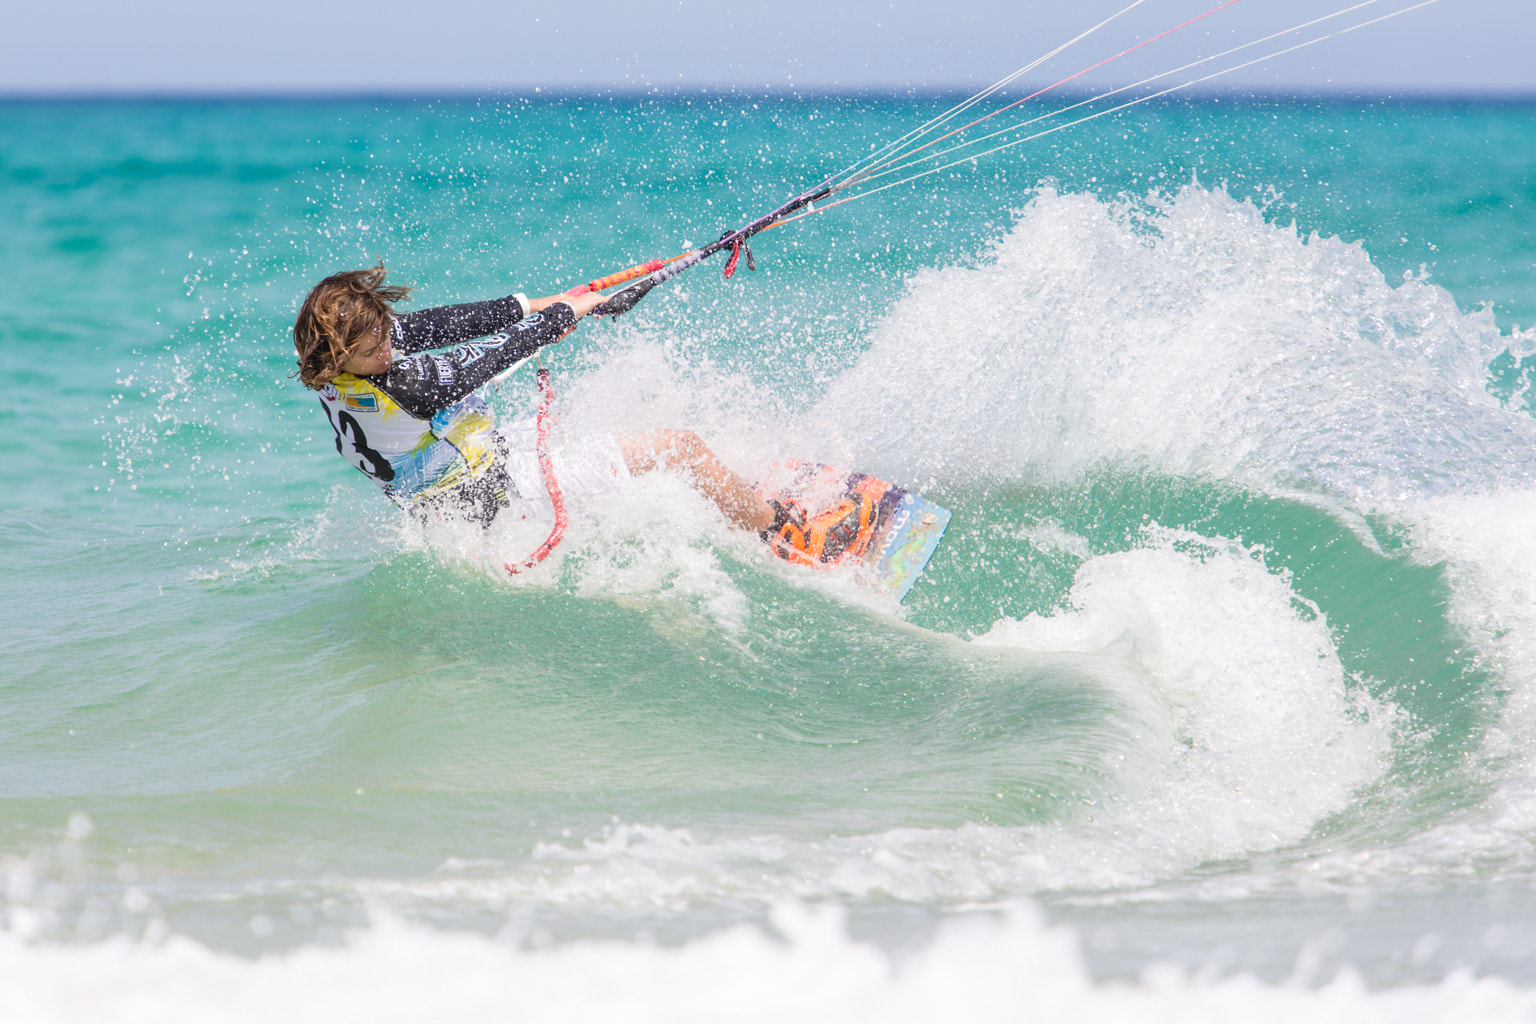 Photograph World Cup Kiting by matthandi on 500px